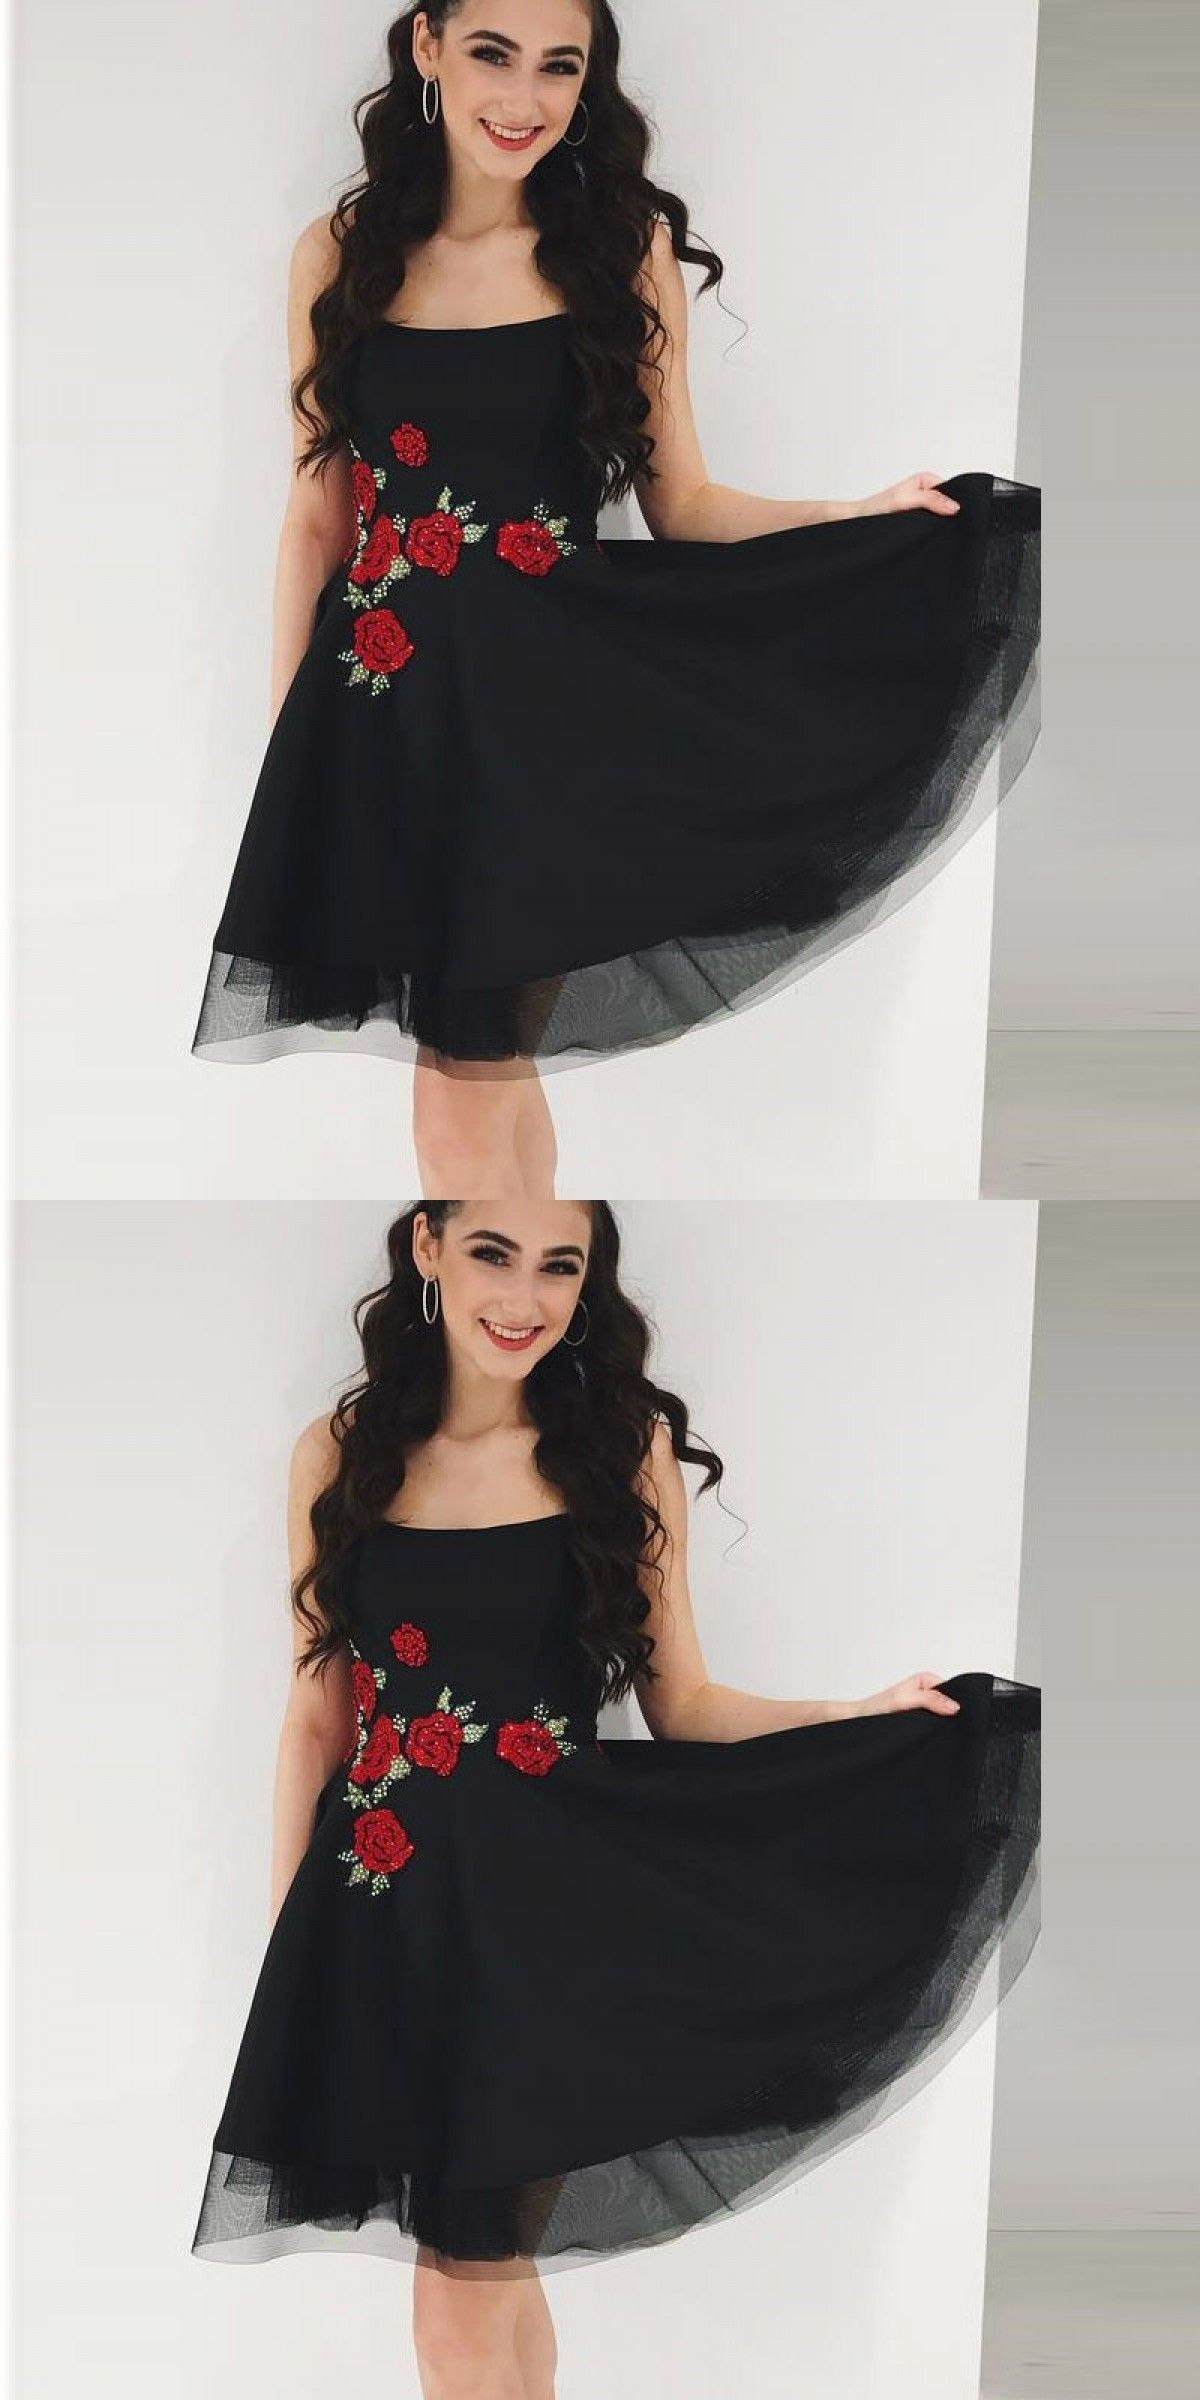 Aline scoop sleeveless black short homecoming dress with appliques